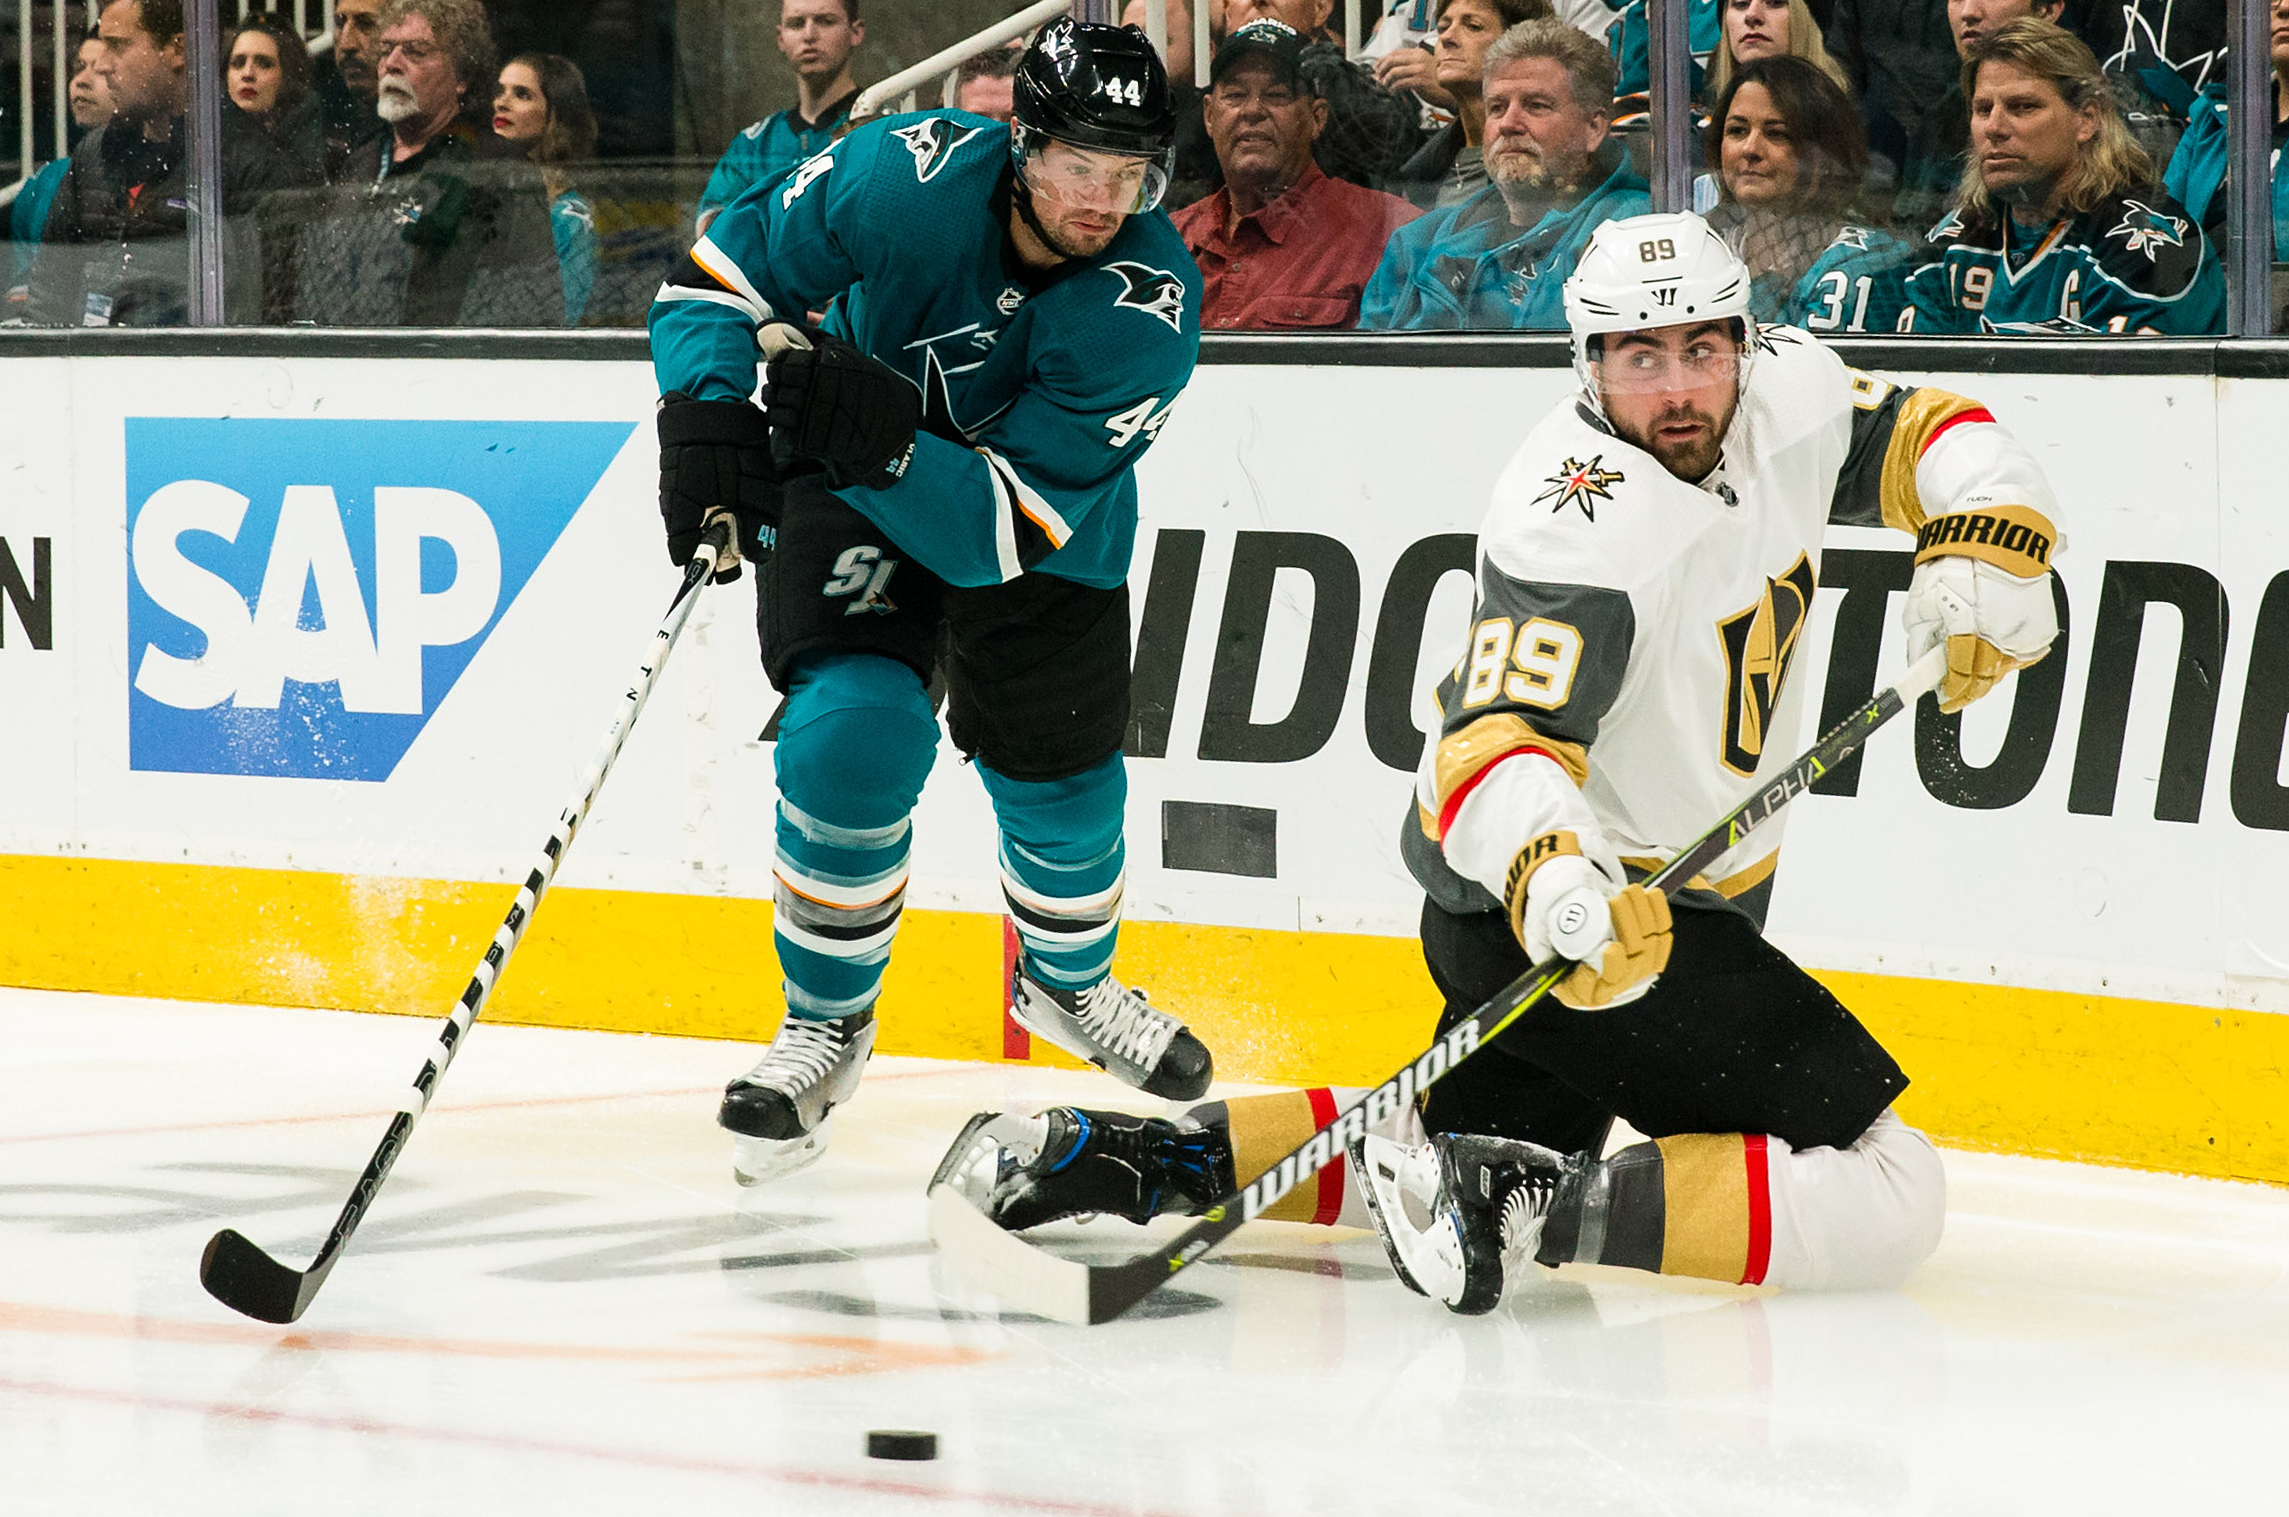 San Jose Sharks defenseman Marc-Edouard Vlasic (44) and Vegas Golden Knights right wing Alex Tuch (89) battle for control of the puck in the first period of game five of the first round of the 2019 Stanley Cup Playoffs at SAP Center at San Jose.